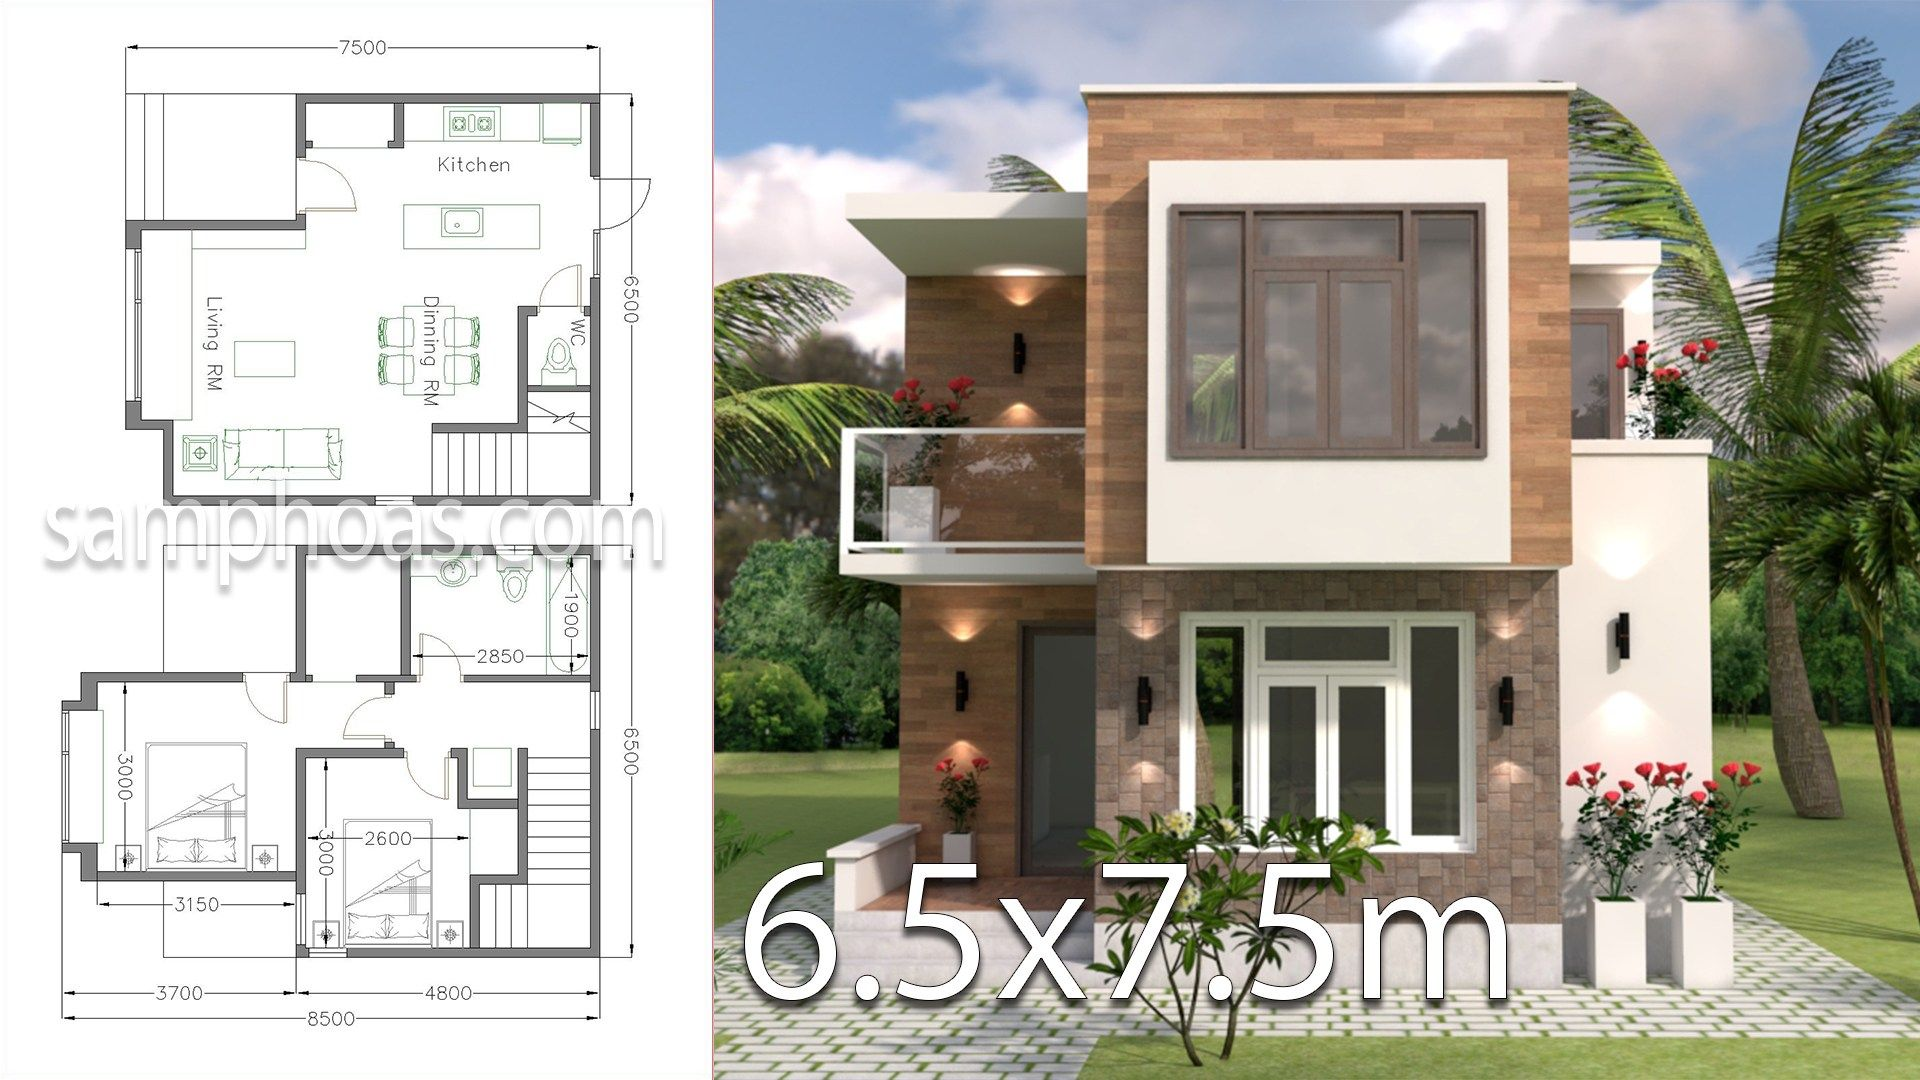 The House Has Car Parking Small Garden Living Room Dining Room Kitchen Has Door Access To Backya Small House Design Home Design Plans Modern House Plans